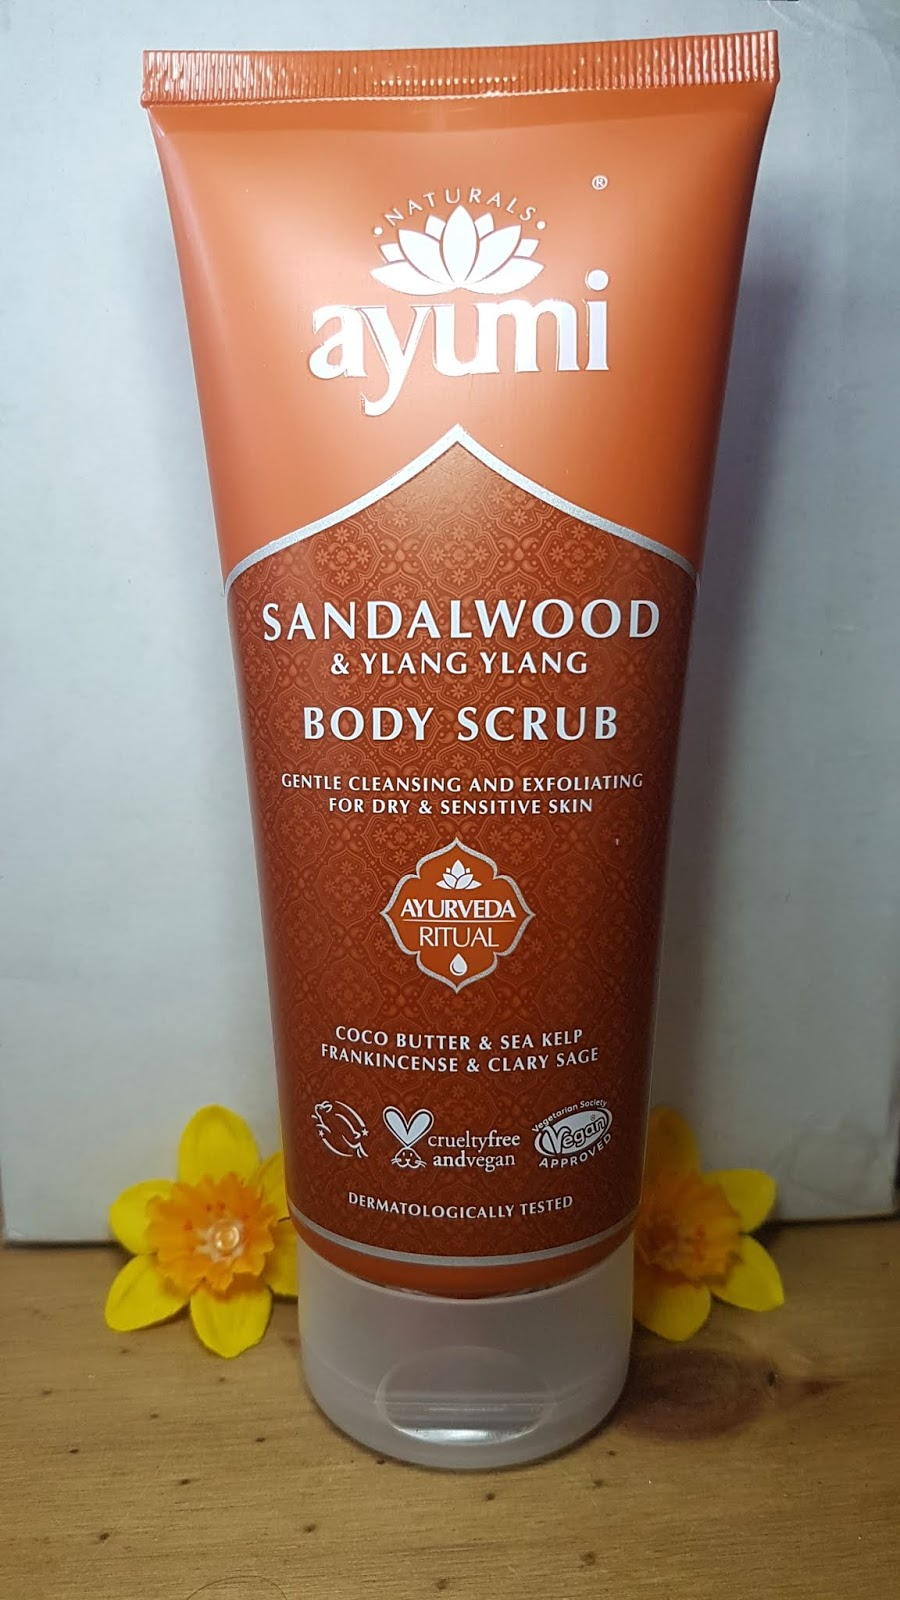 Ayumi Sandalwood & Ylang Ylang Body Scrub Review - Love Lula Beauty Box